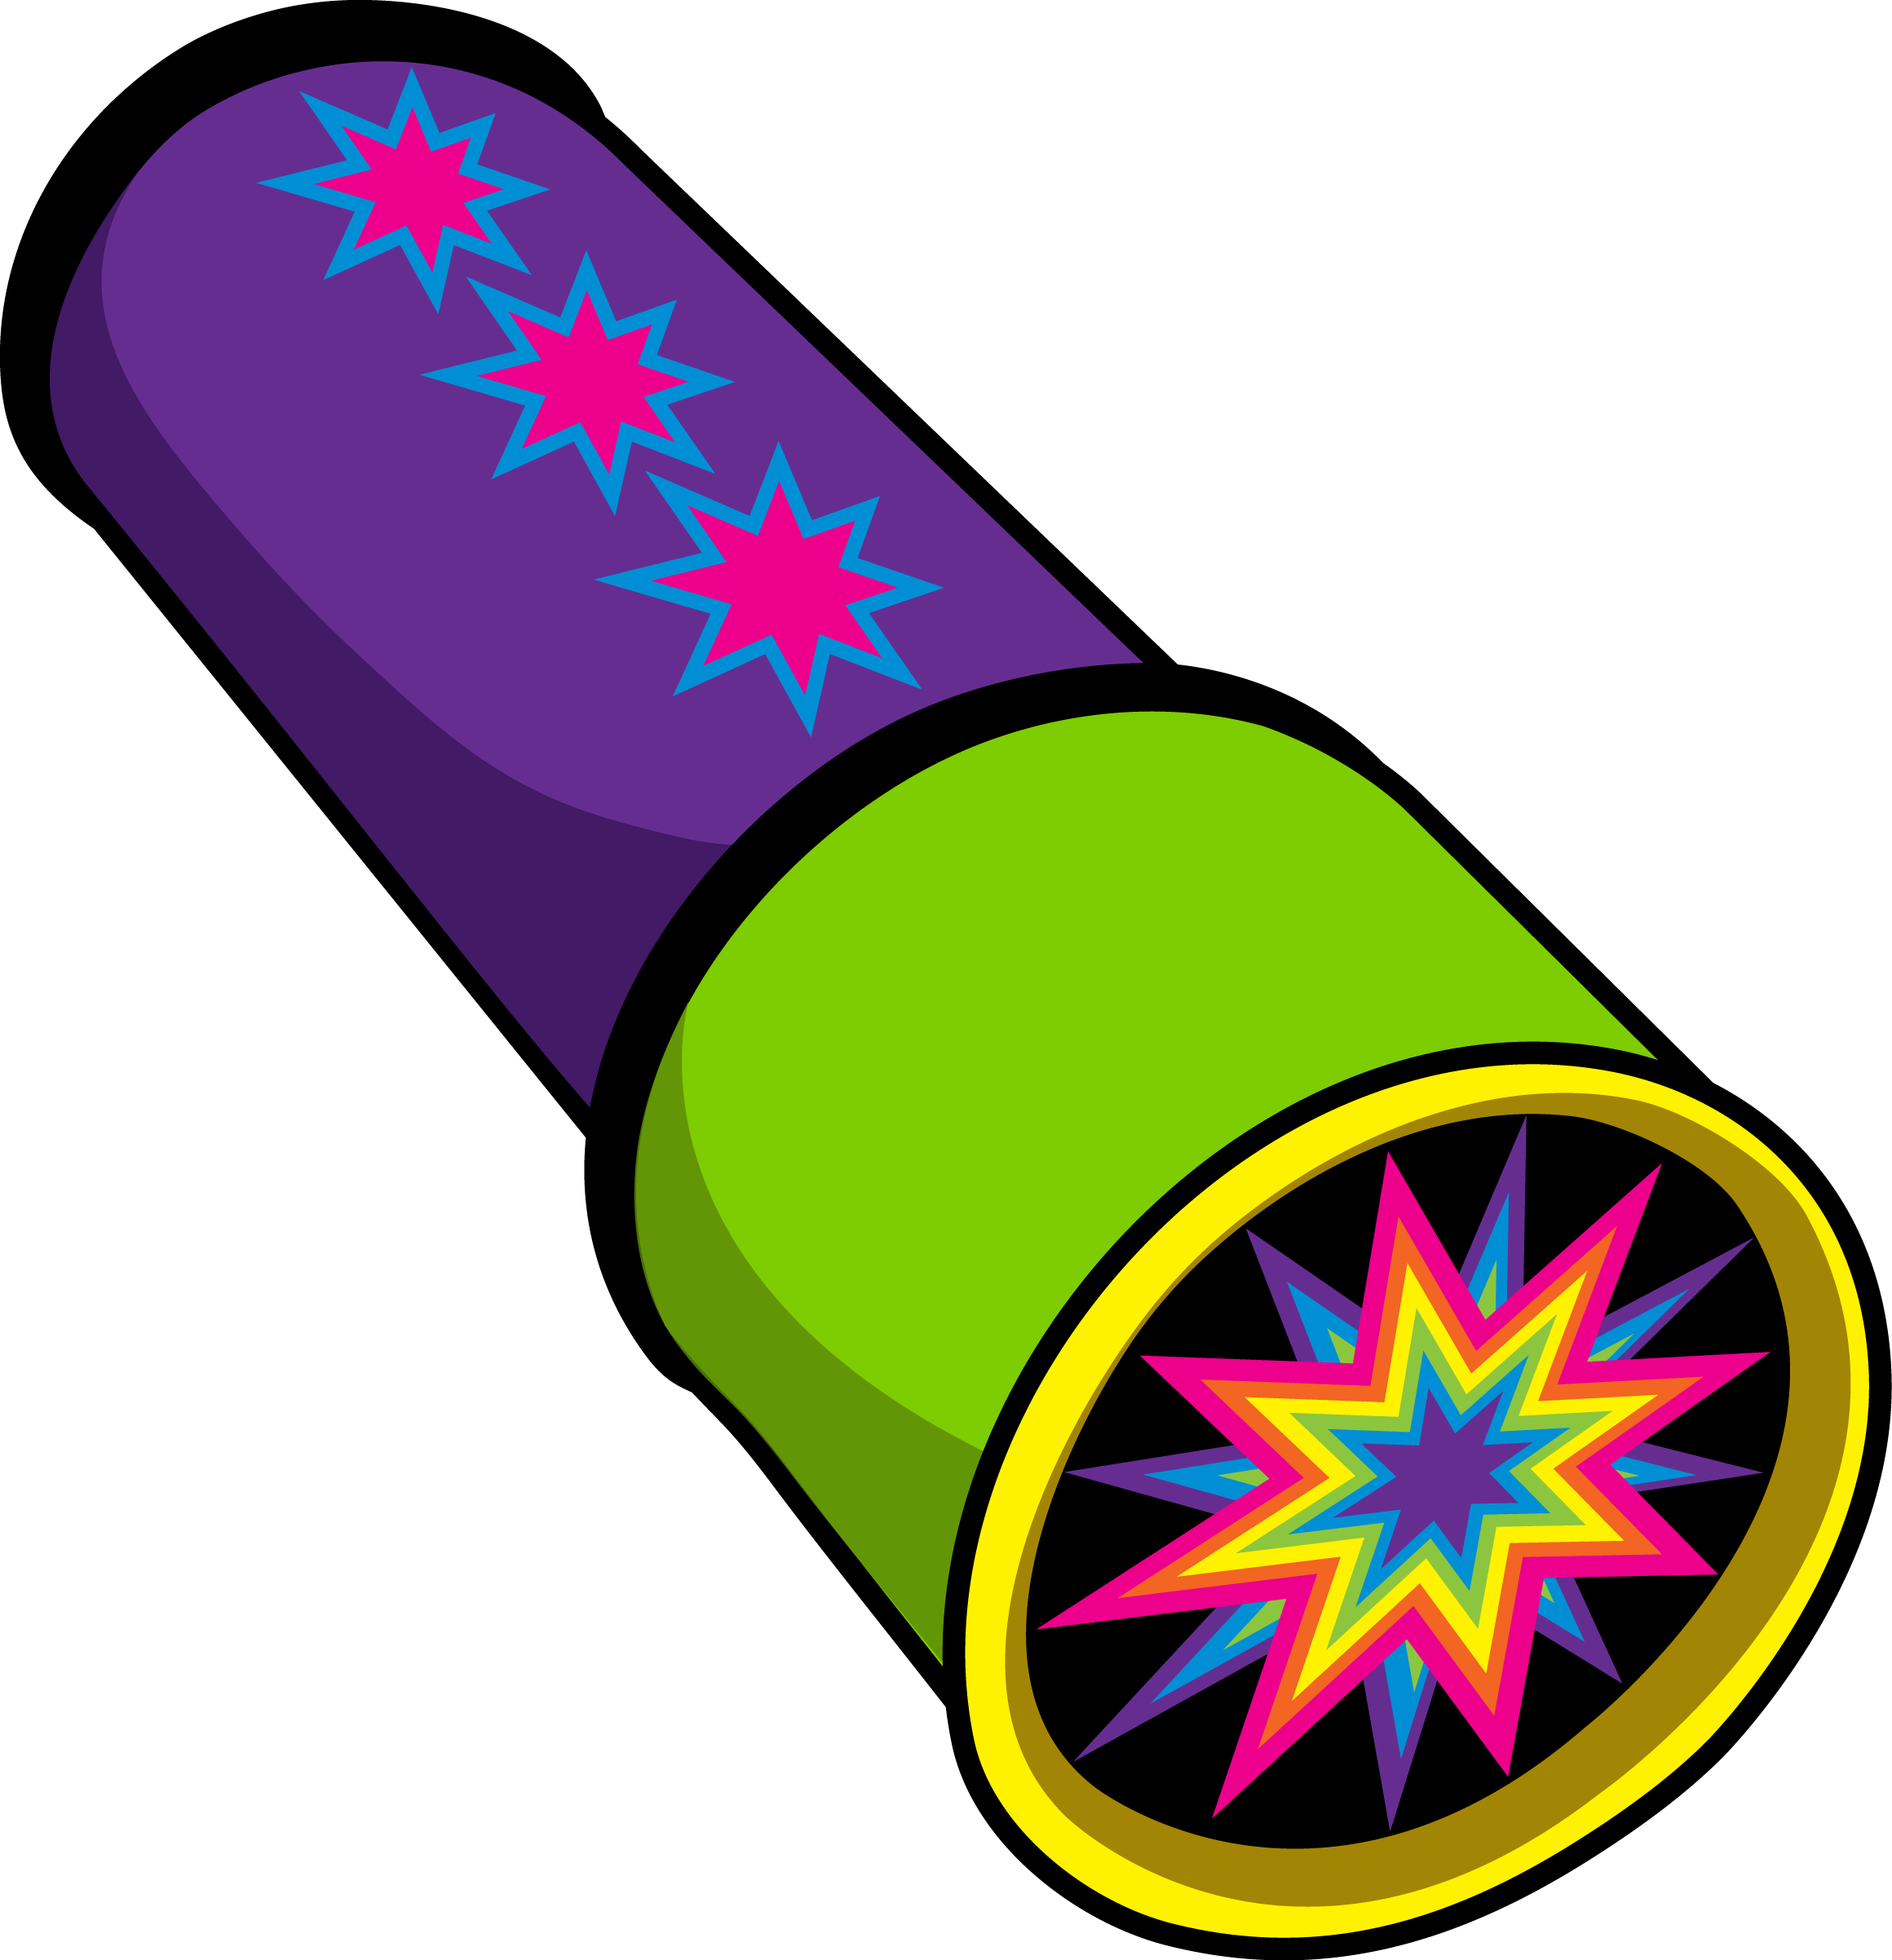 vector royalty free download neon drawing psychedelic #114673973